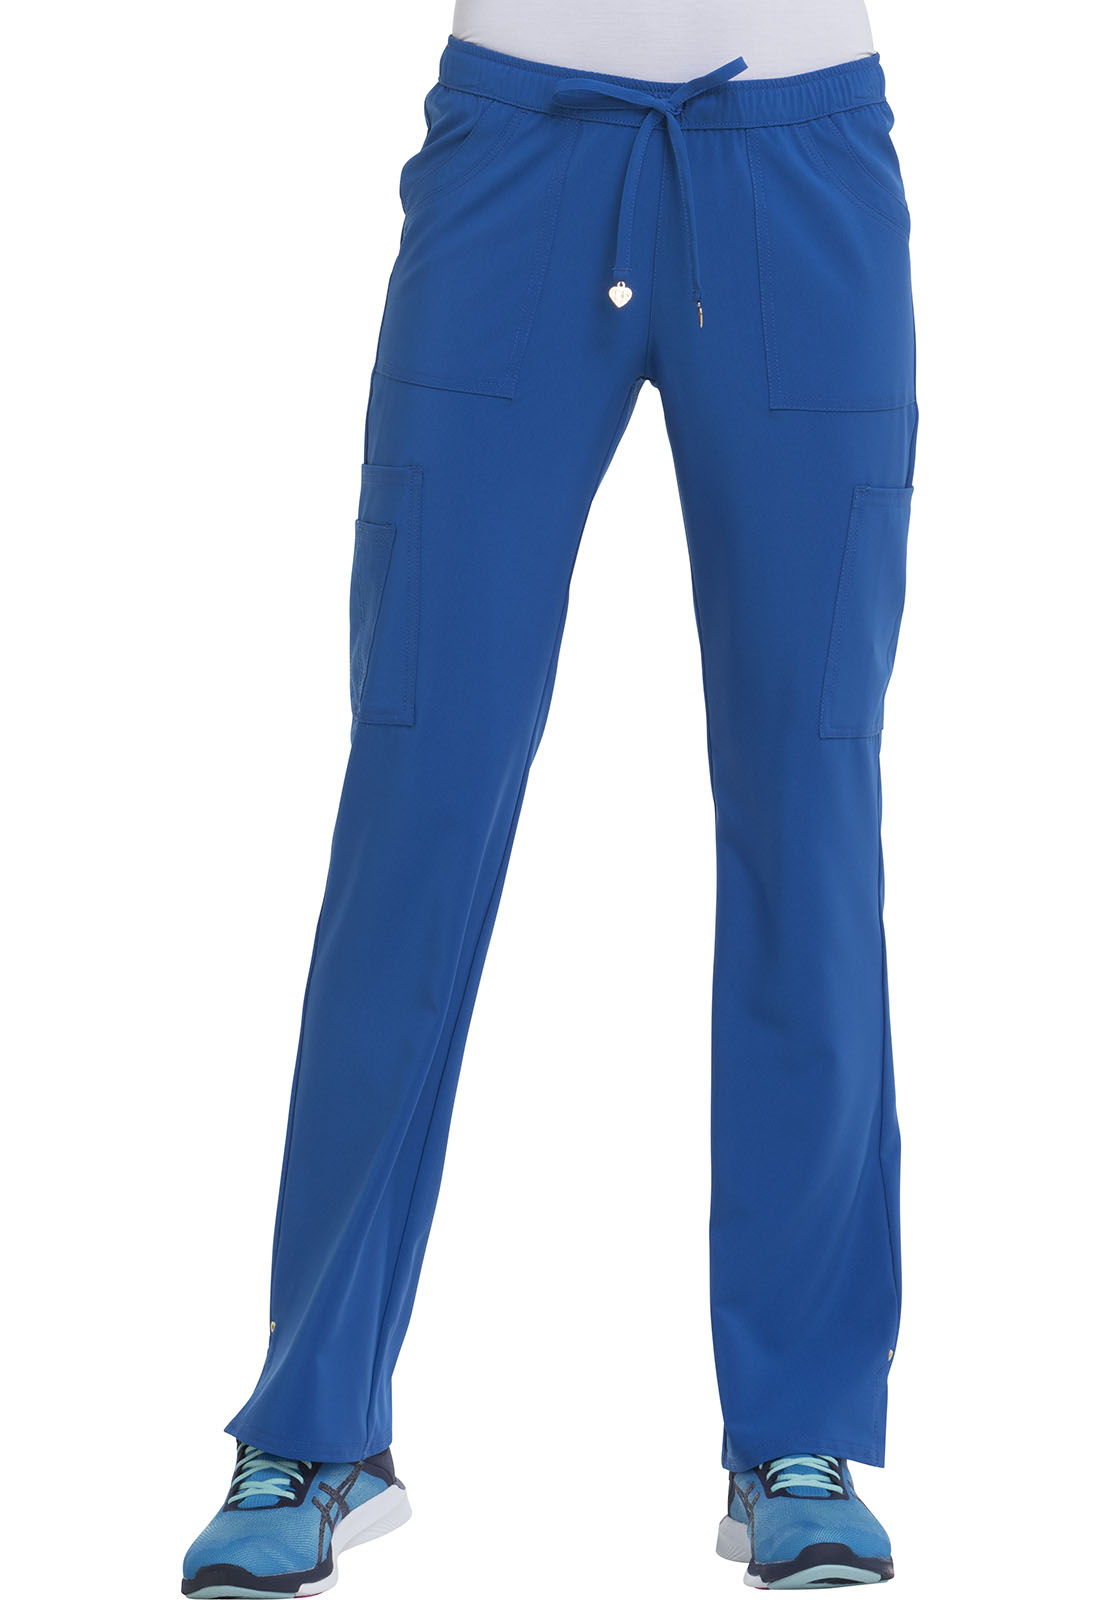 429cc16f241 Love Always Low Rise Drawstring Pant in Royal HS025-RYPS from ...